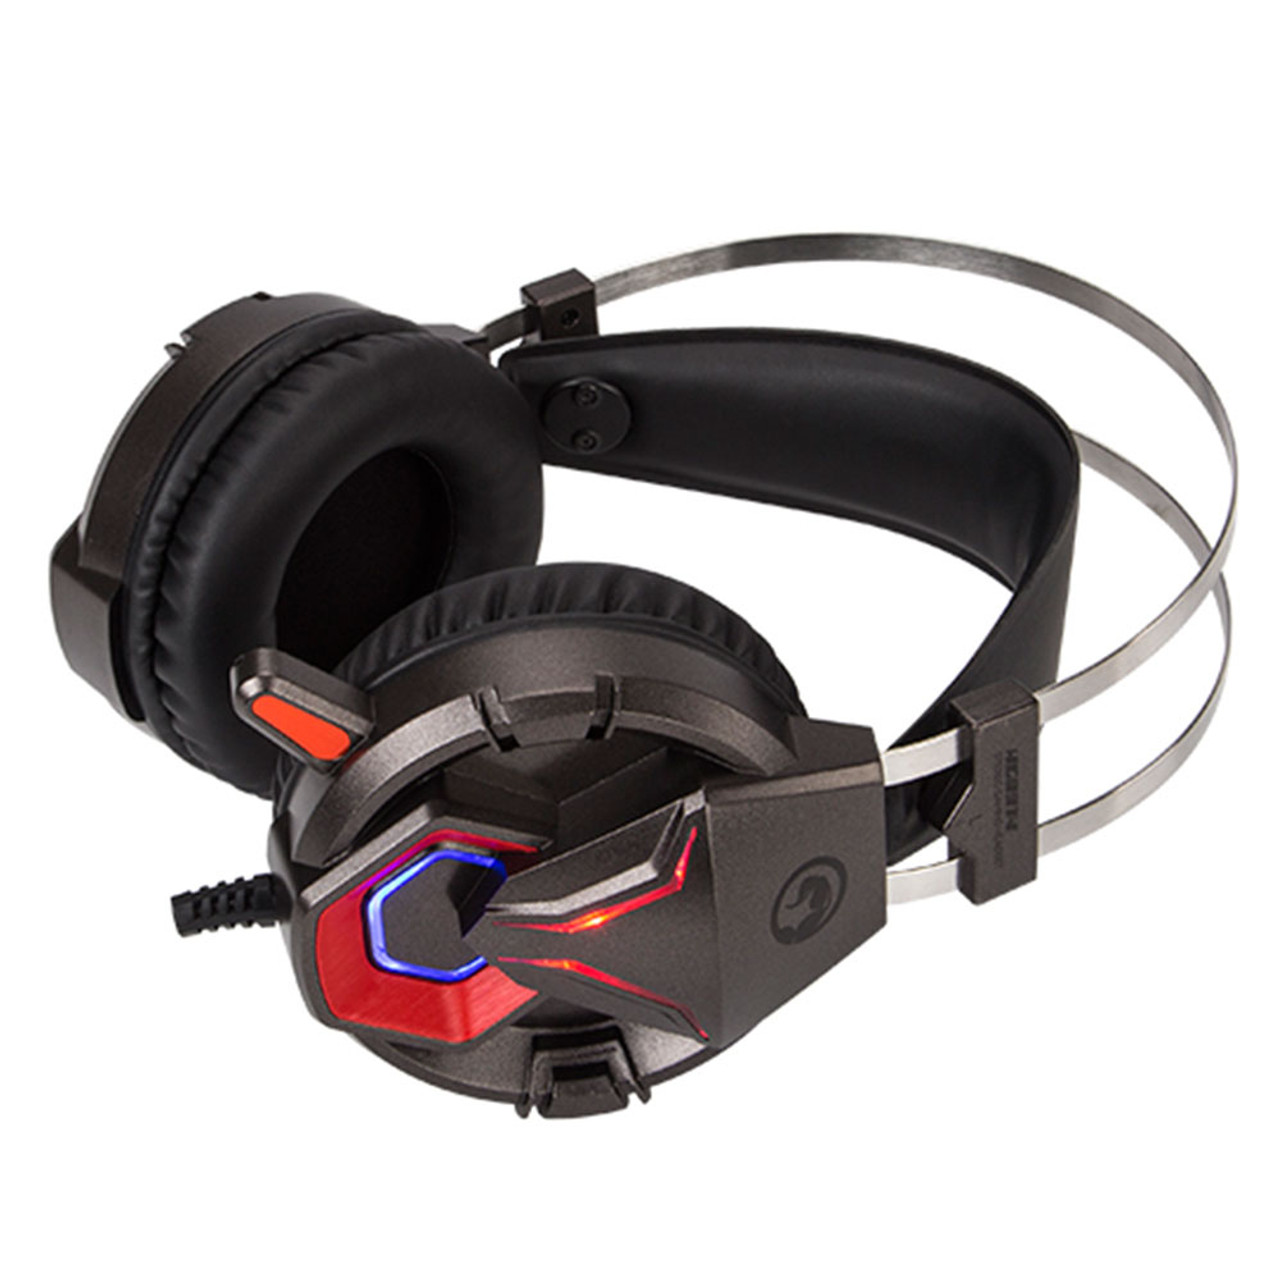 MARVO HG8914 BACKLIT, STEREO GAMING HEADSET Compatibility: PC, consoles (PS4, Xbox One)